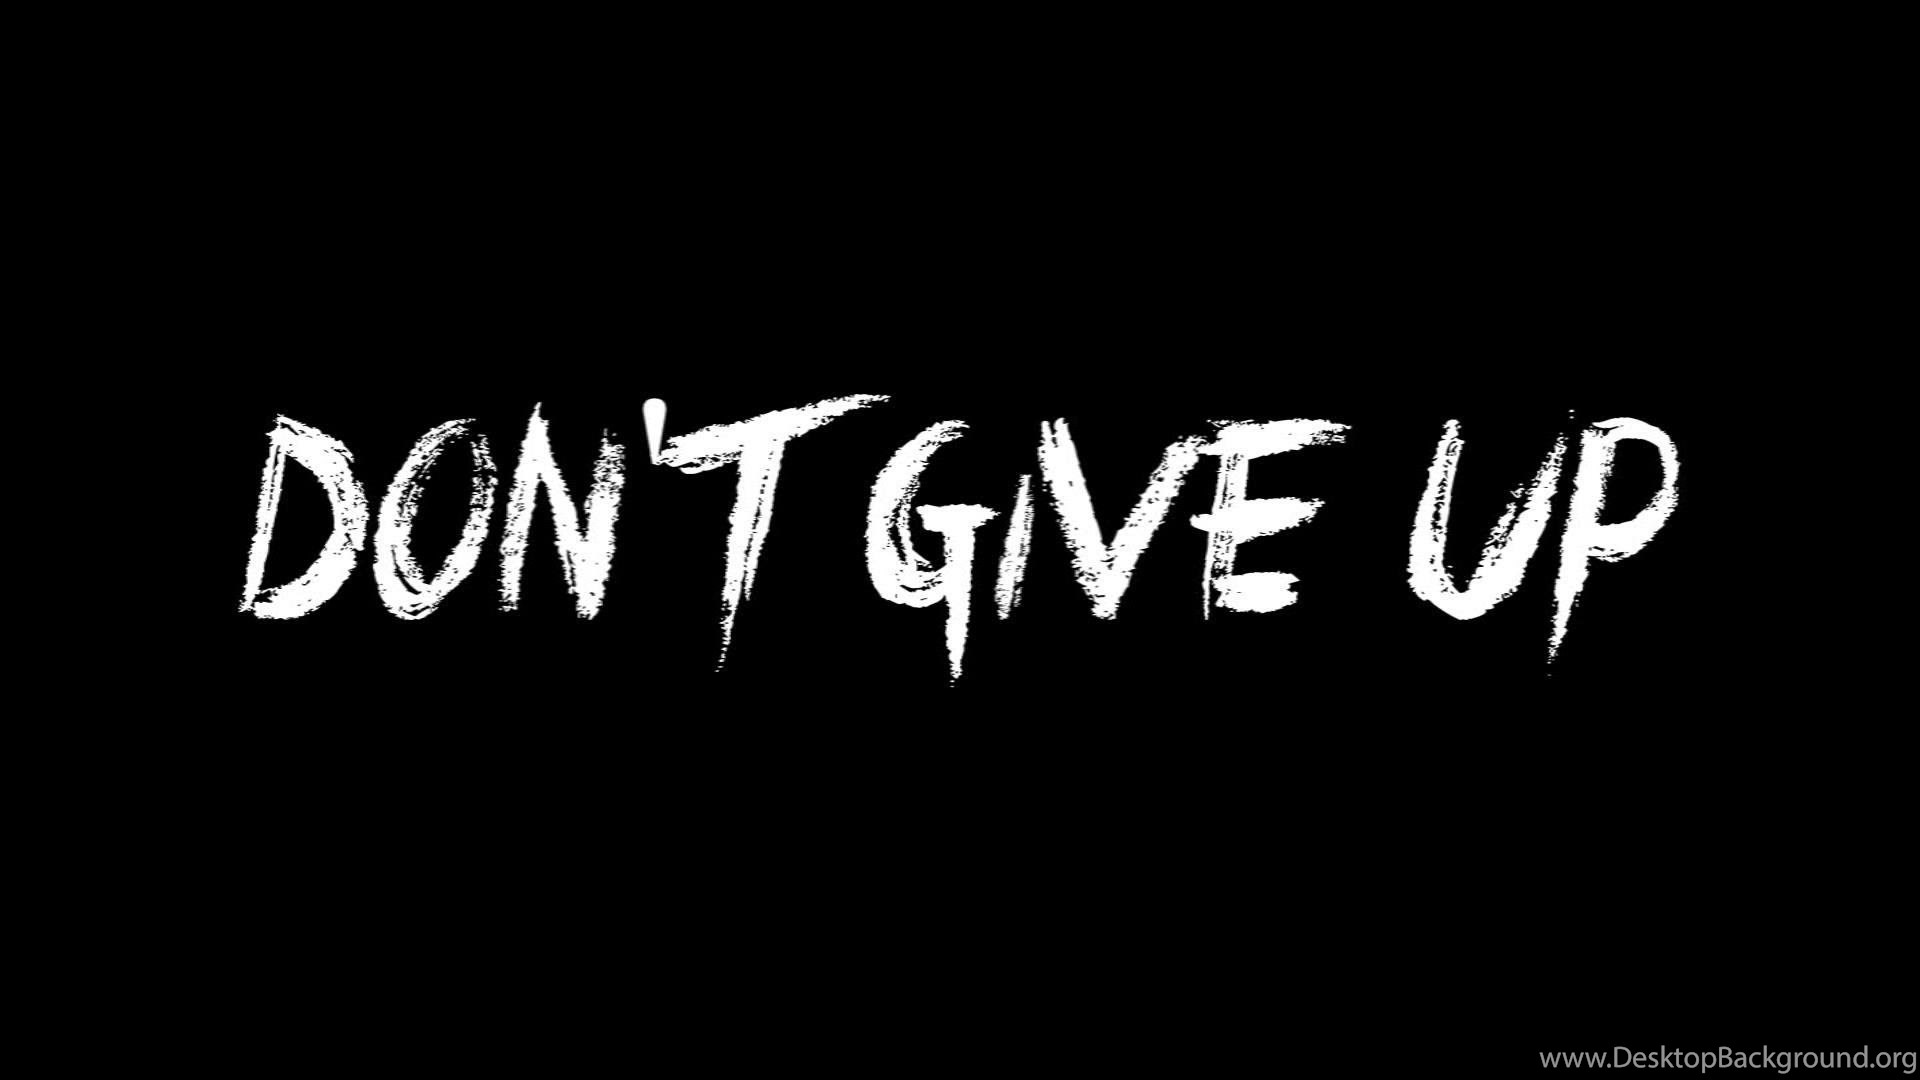 Never give up on your dreams images wallpapers other - Never give up wallpapers desktop hd ...